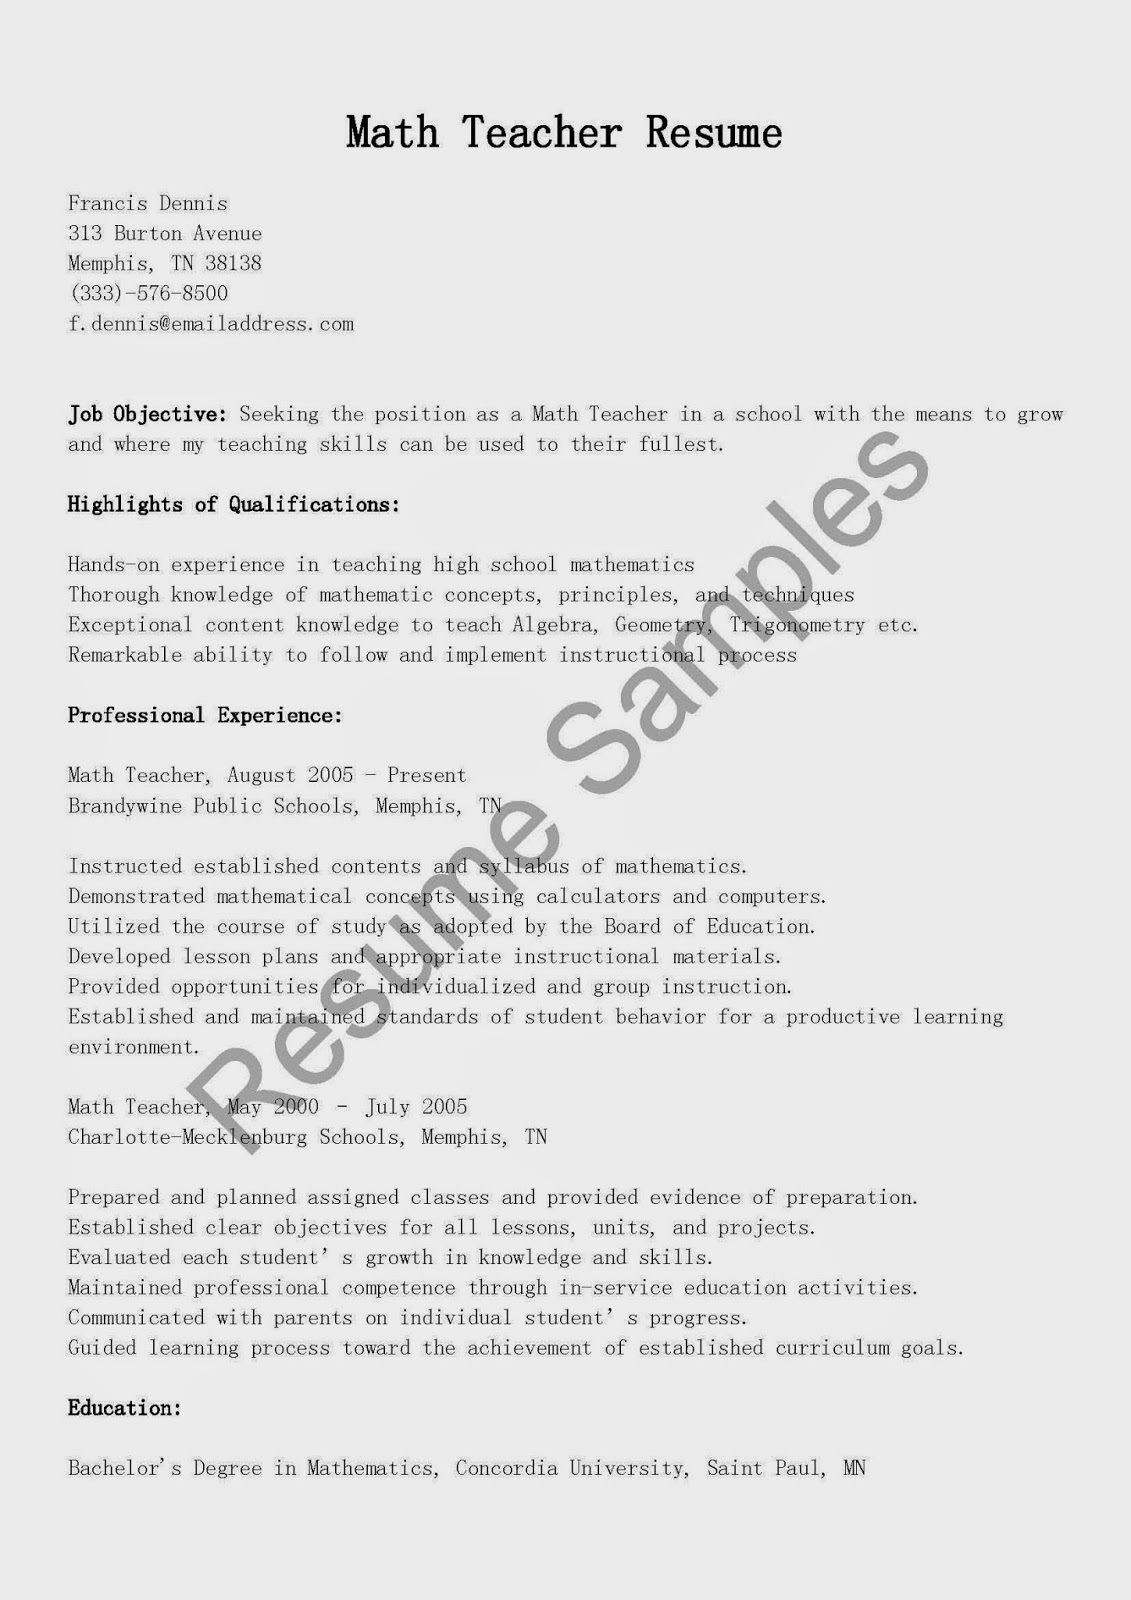 resume samples  math teacher resume sample